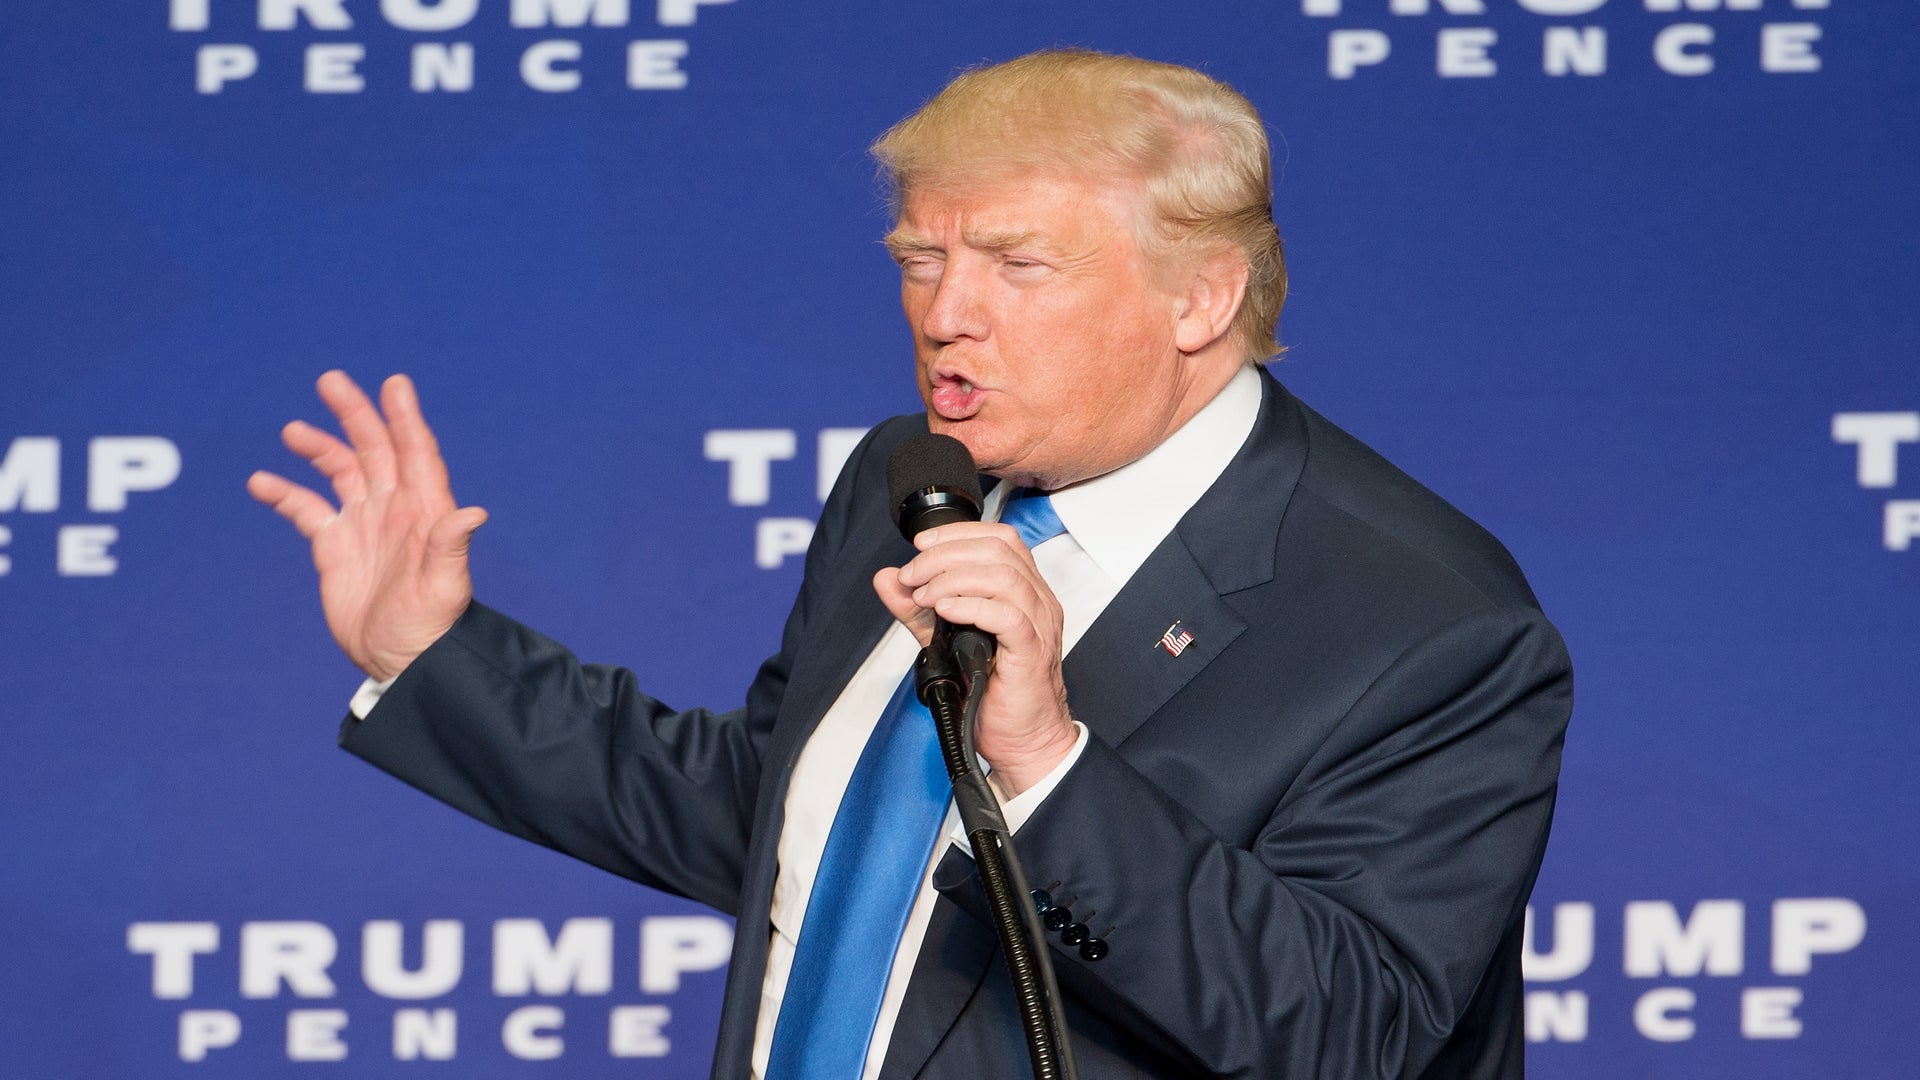 Donald Trump Beefs Up 'Rigged Election' Talk As He Slips At The Polls